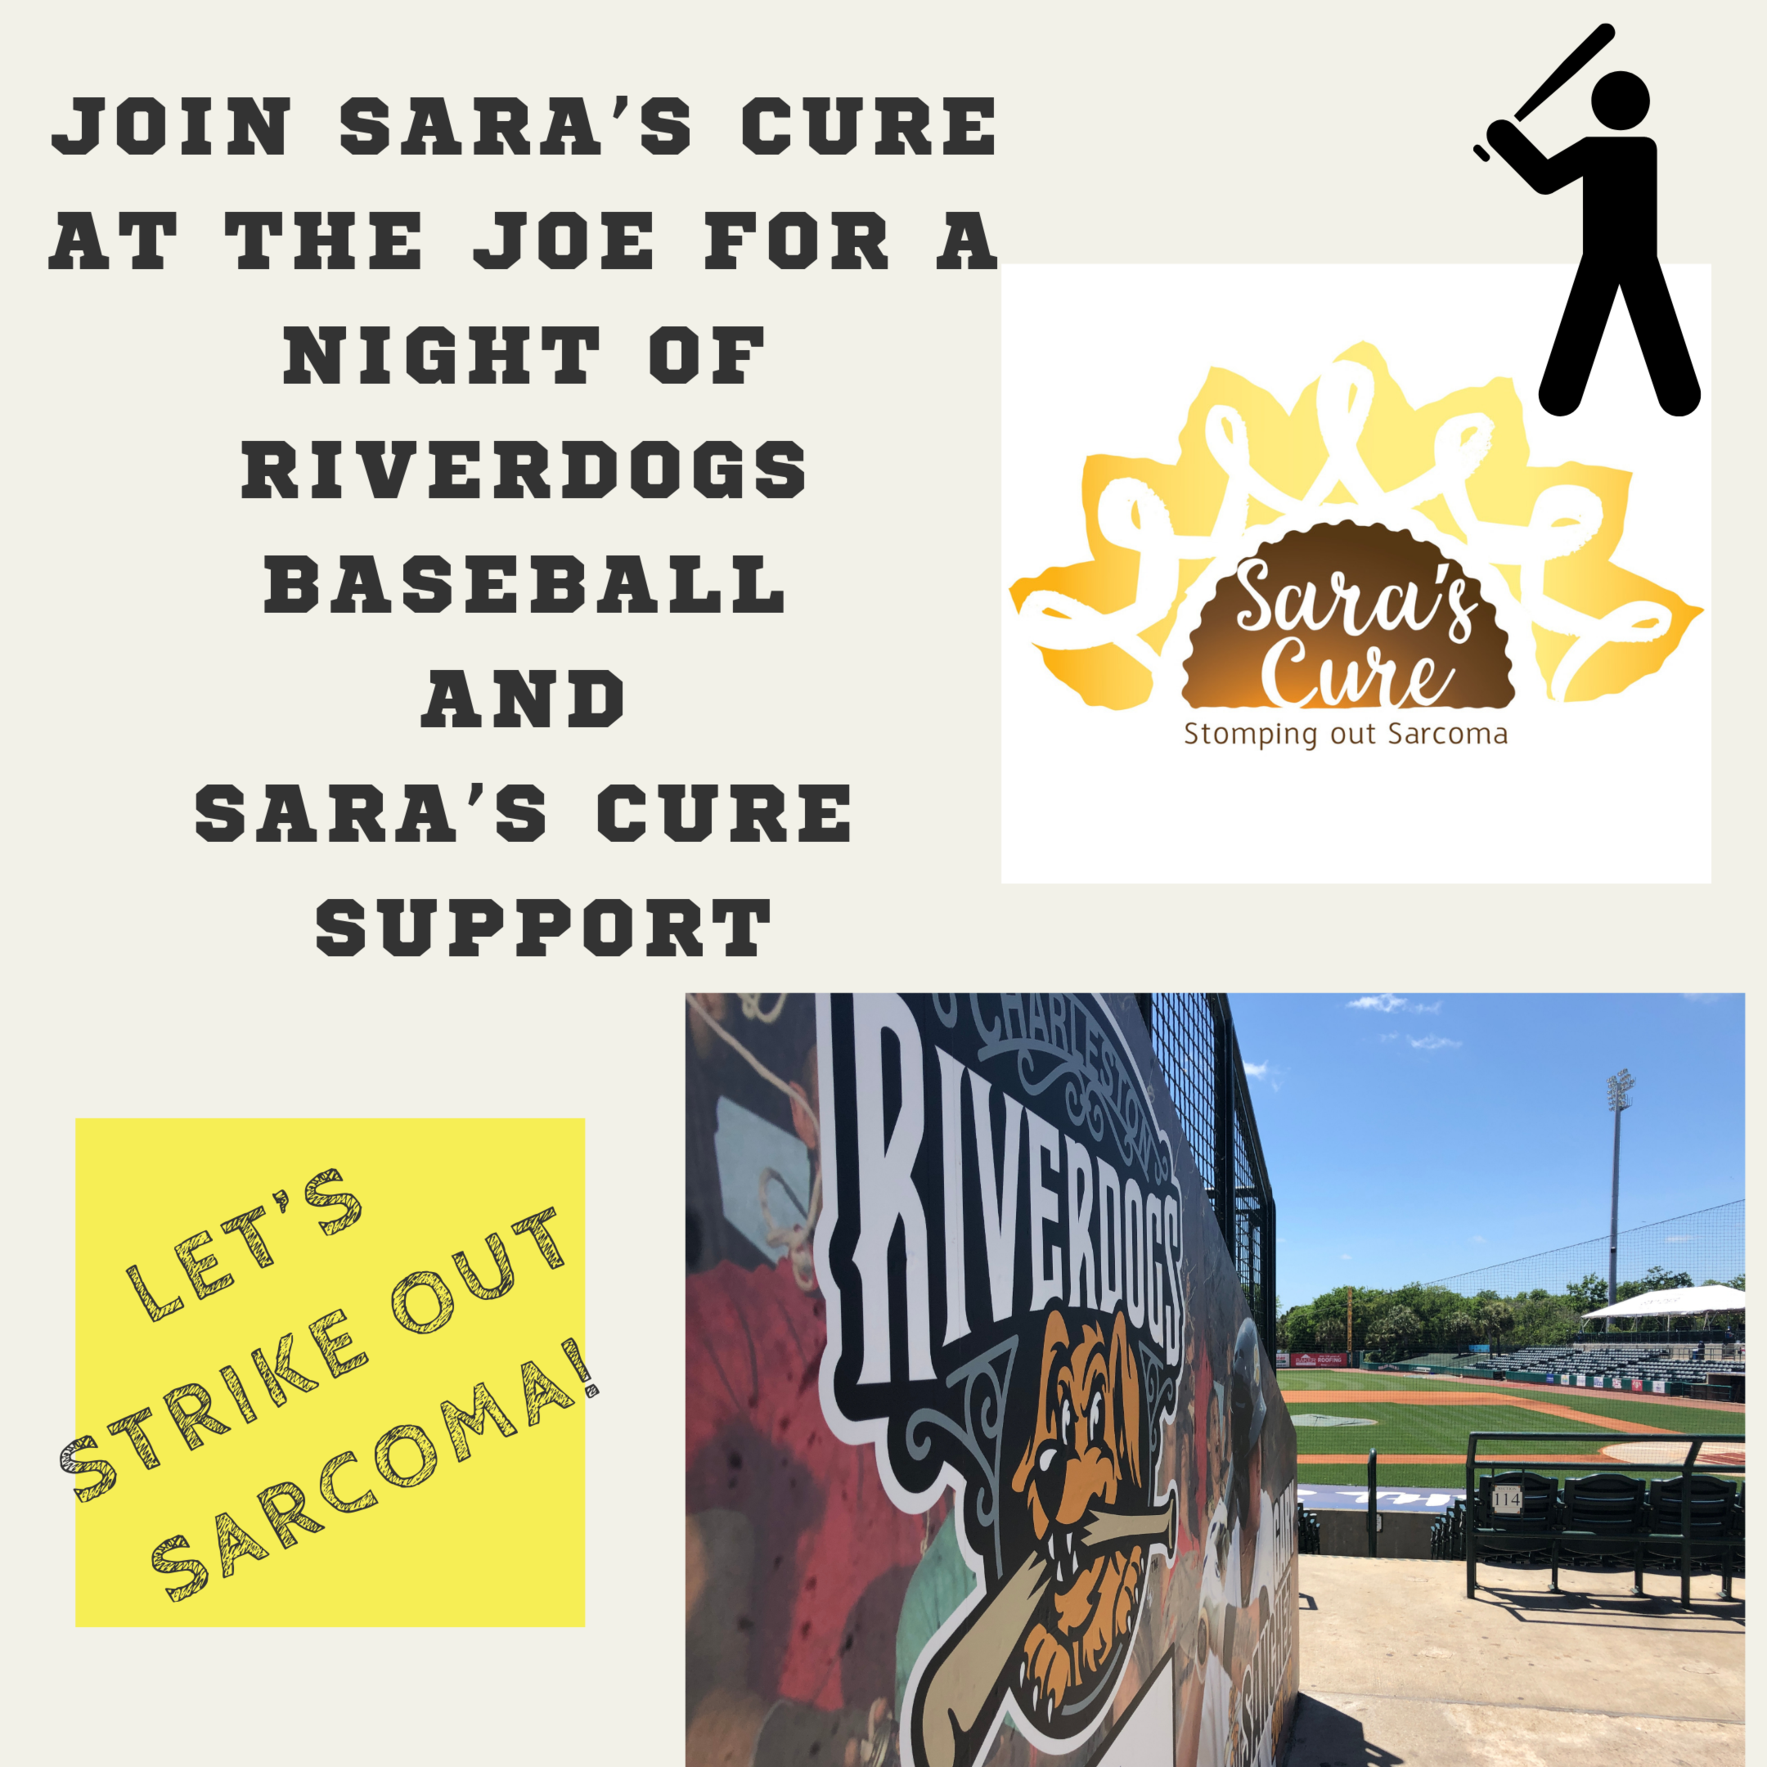 Sara's Cure Night at the RiverDogs image